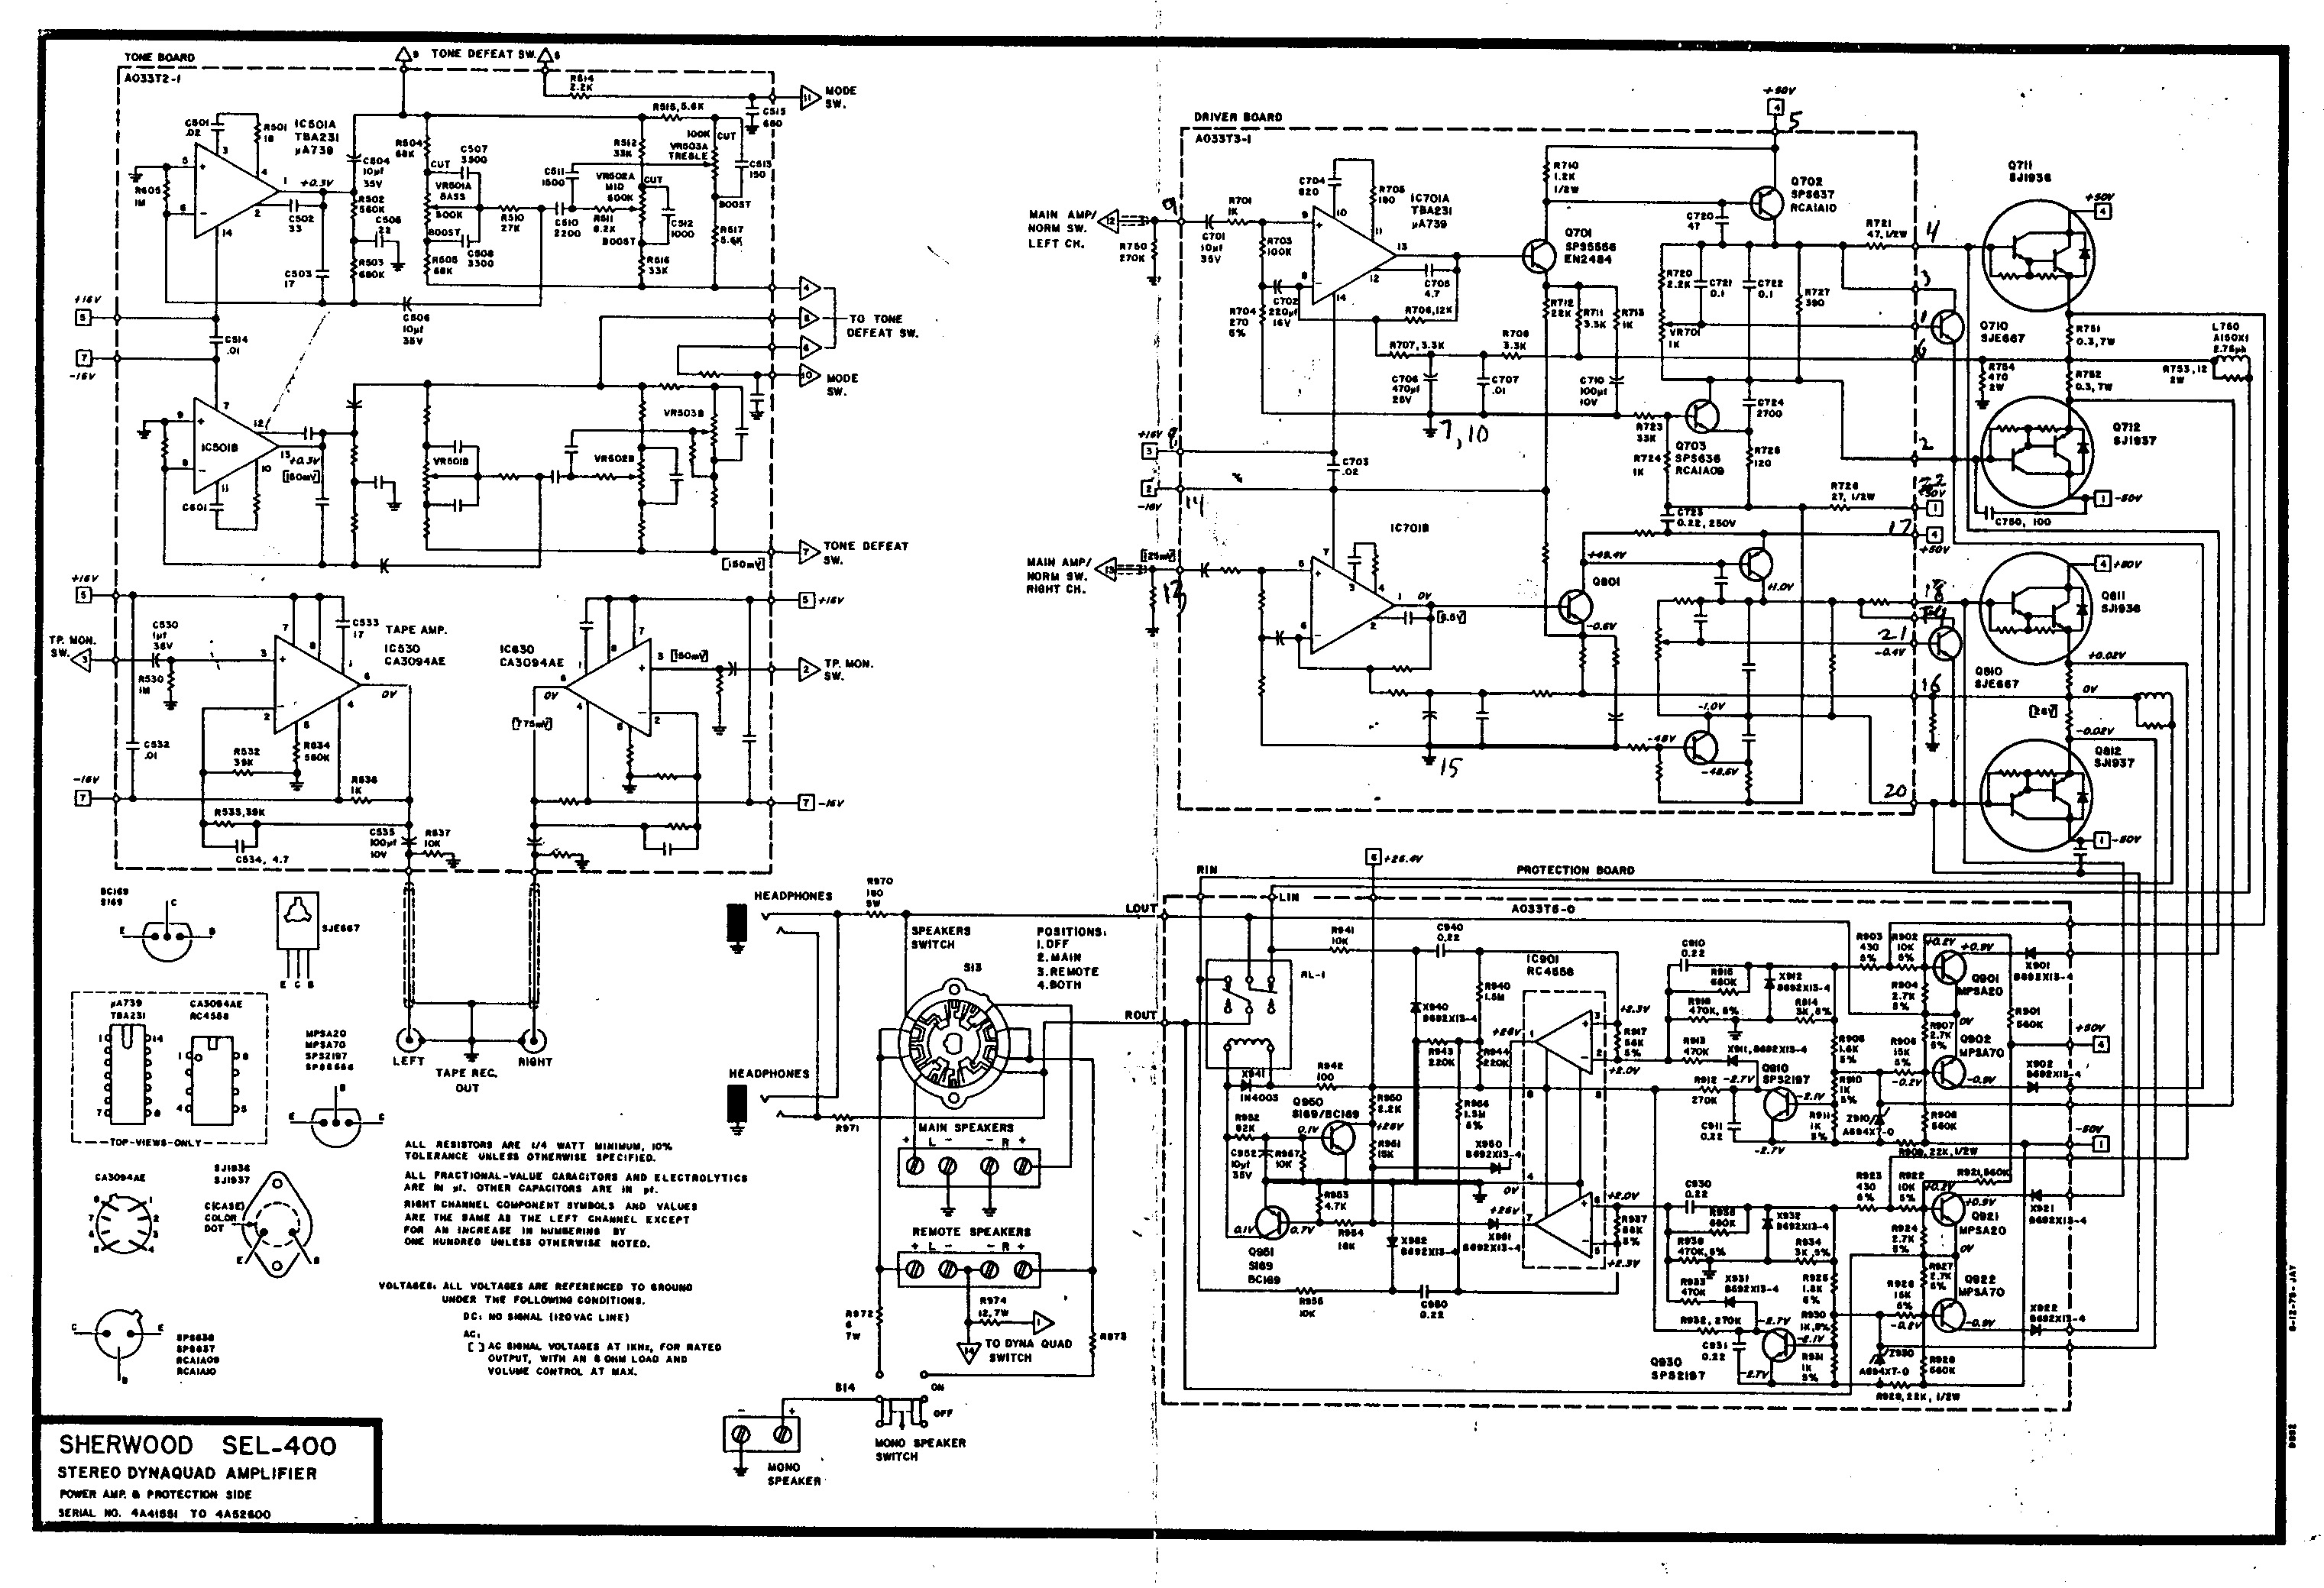 Sherwood SEL 400 Schematic pdf Sherwood SEL 400 Schematic pdf